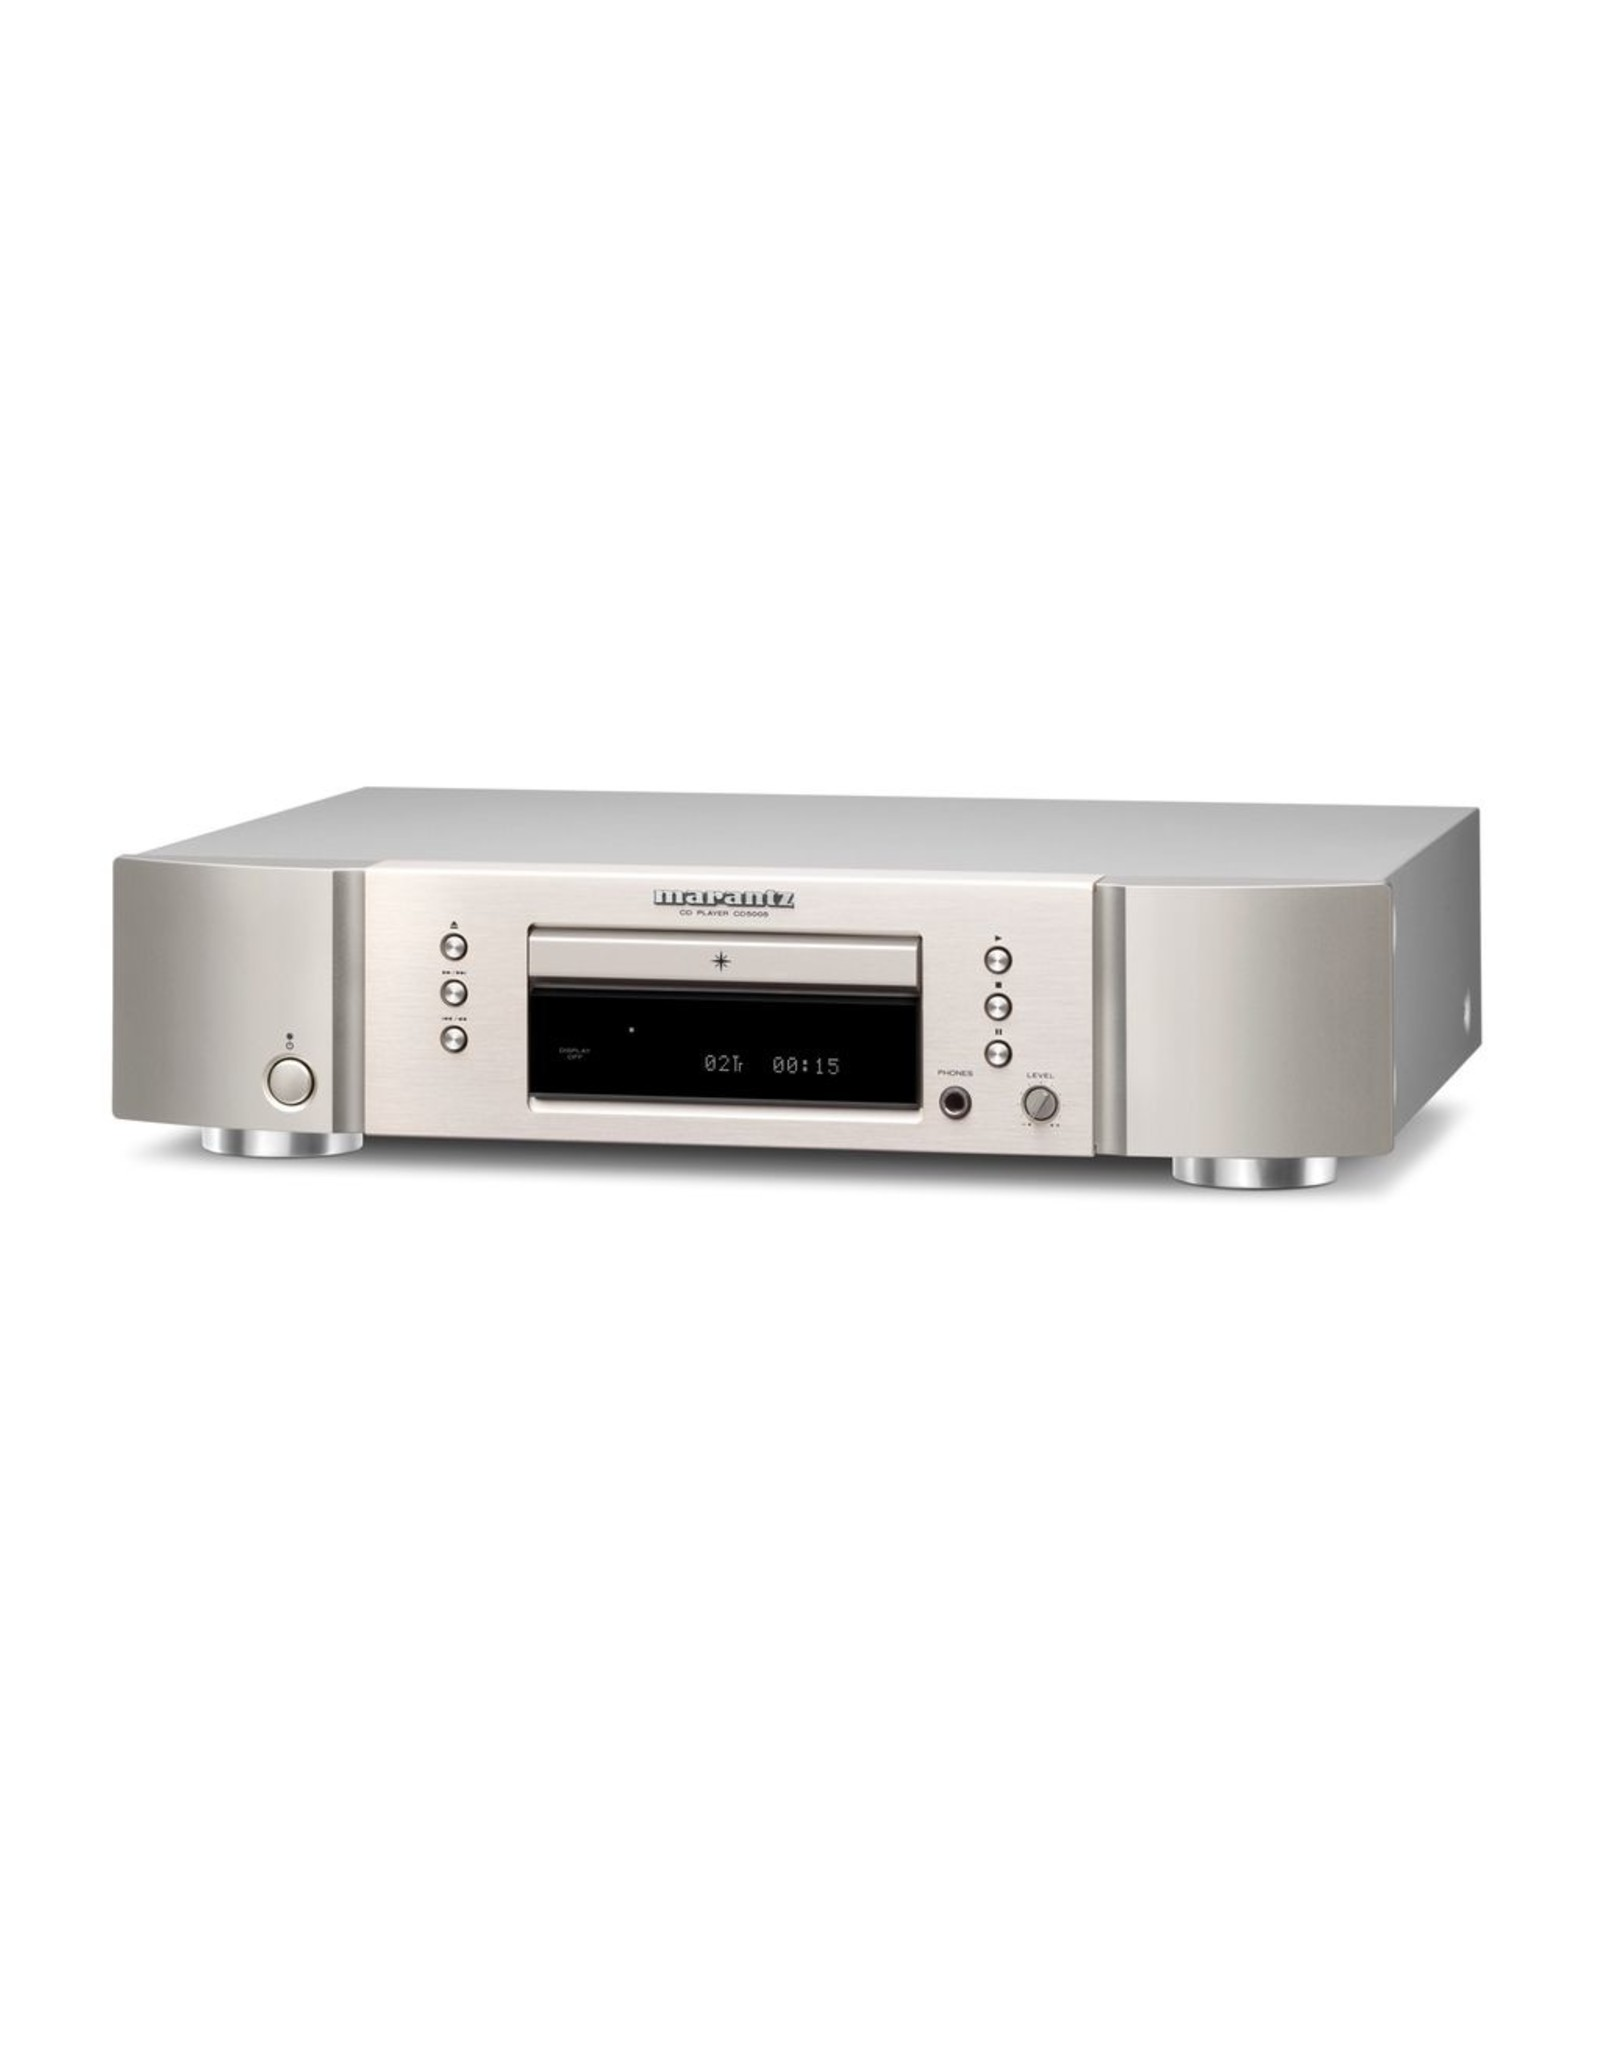 MARANTZ MARANTZ CD5005 CD Player